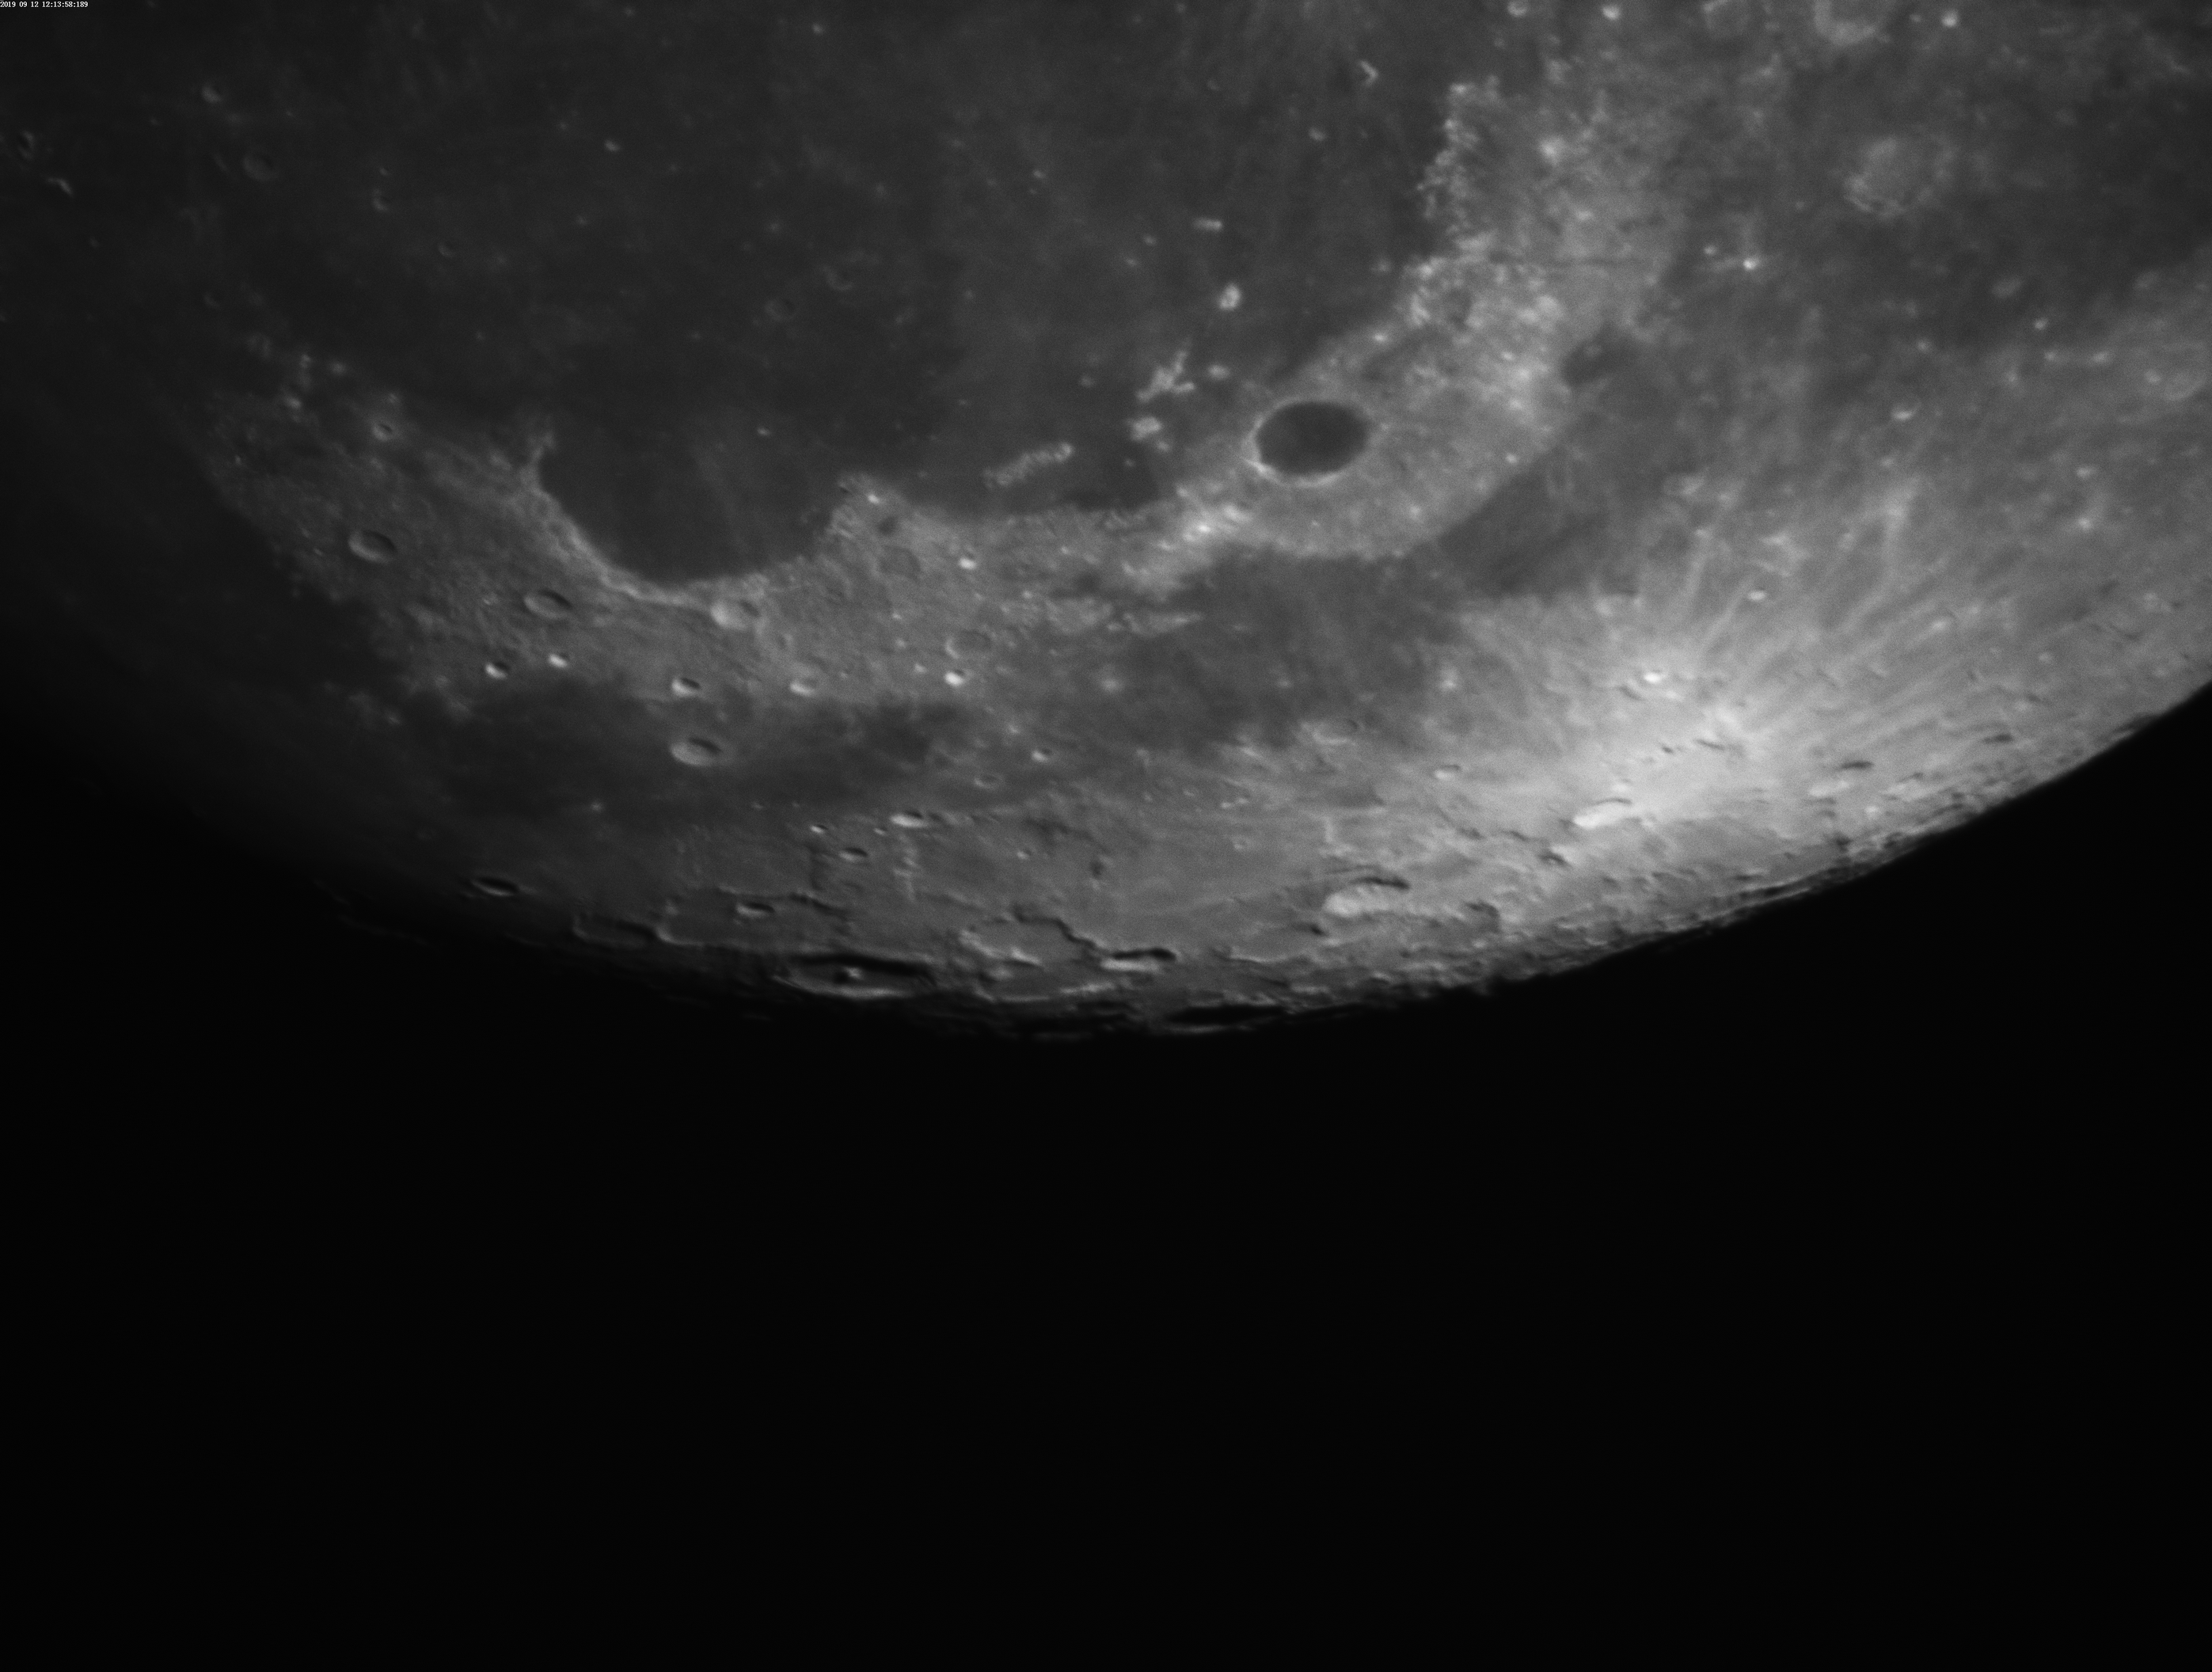 Moon_00054.png